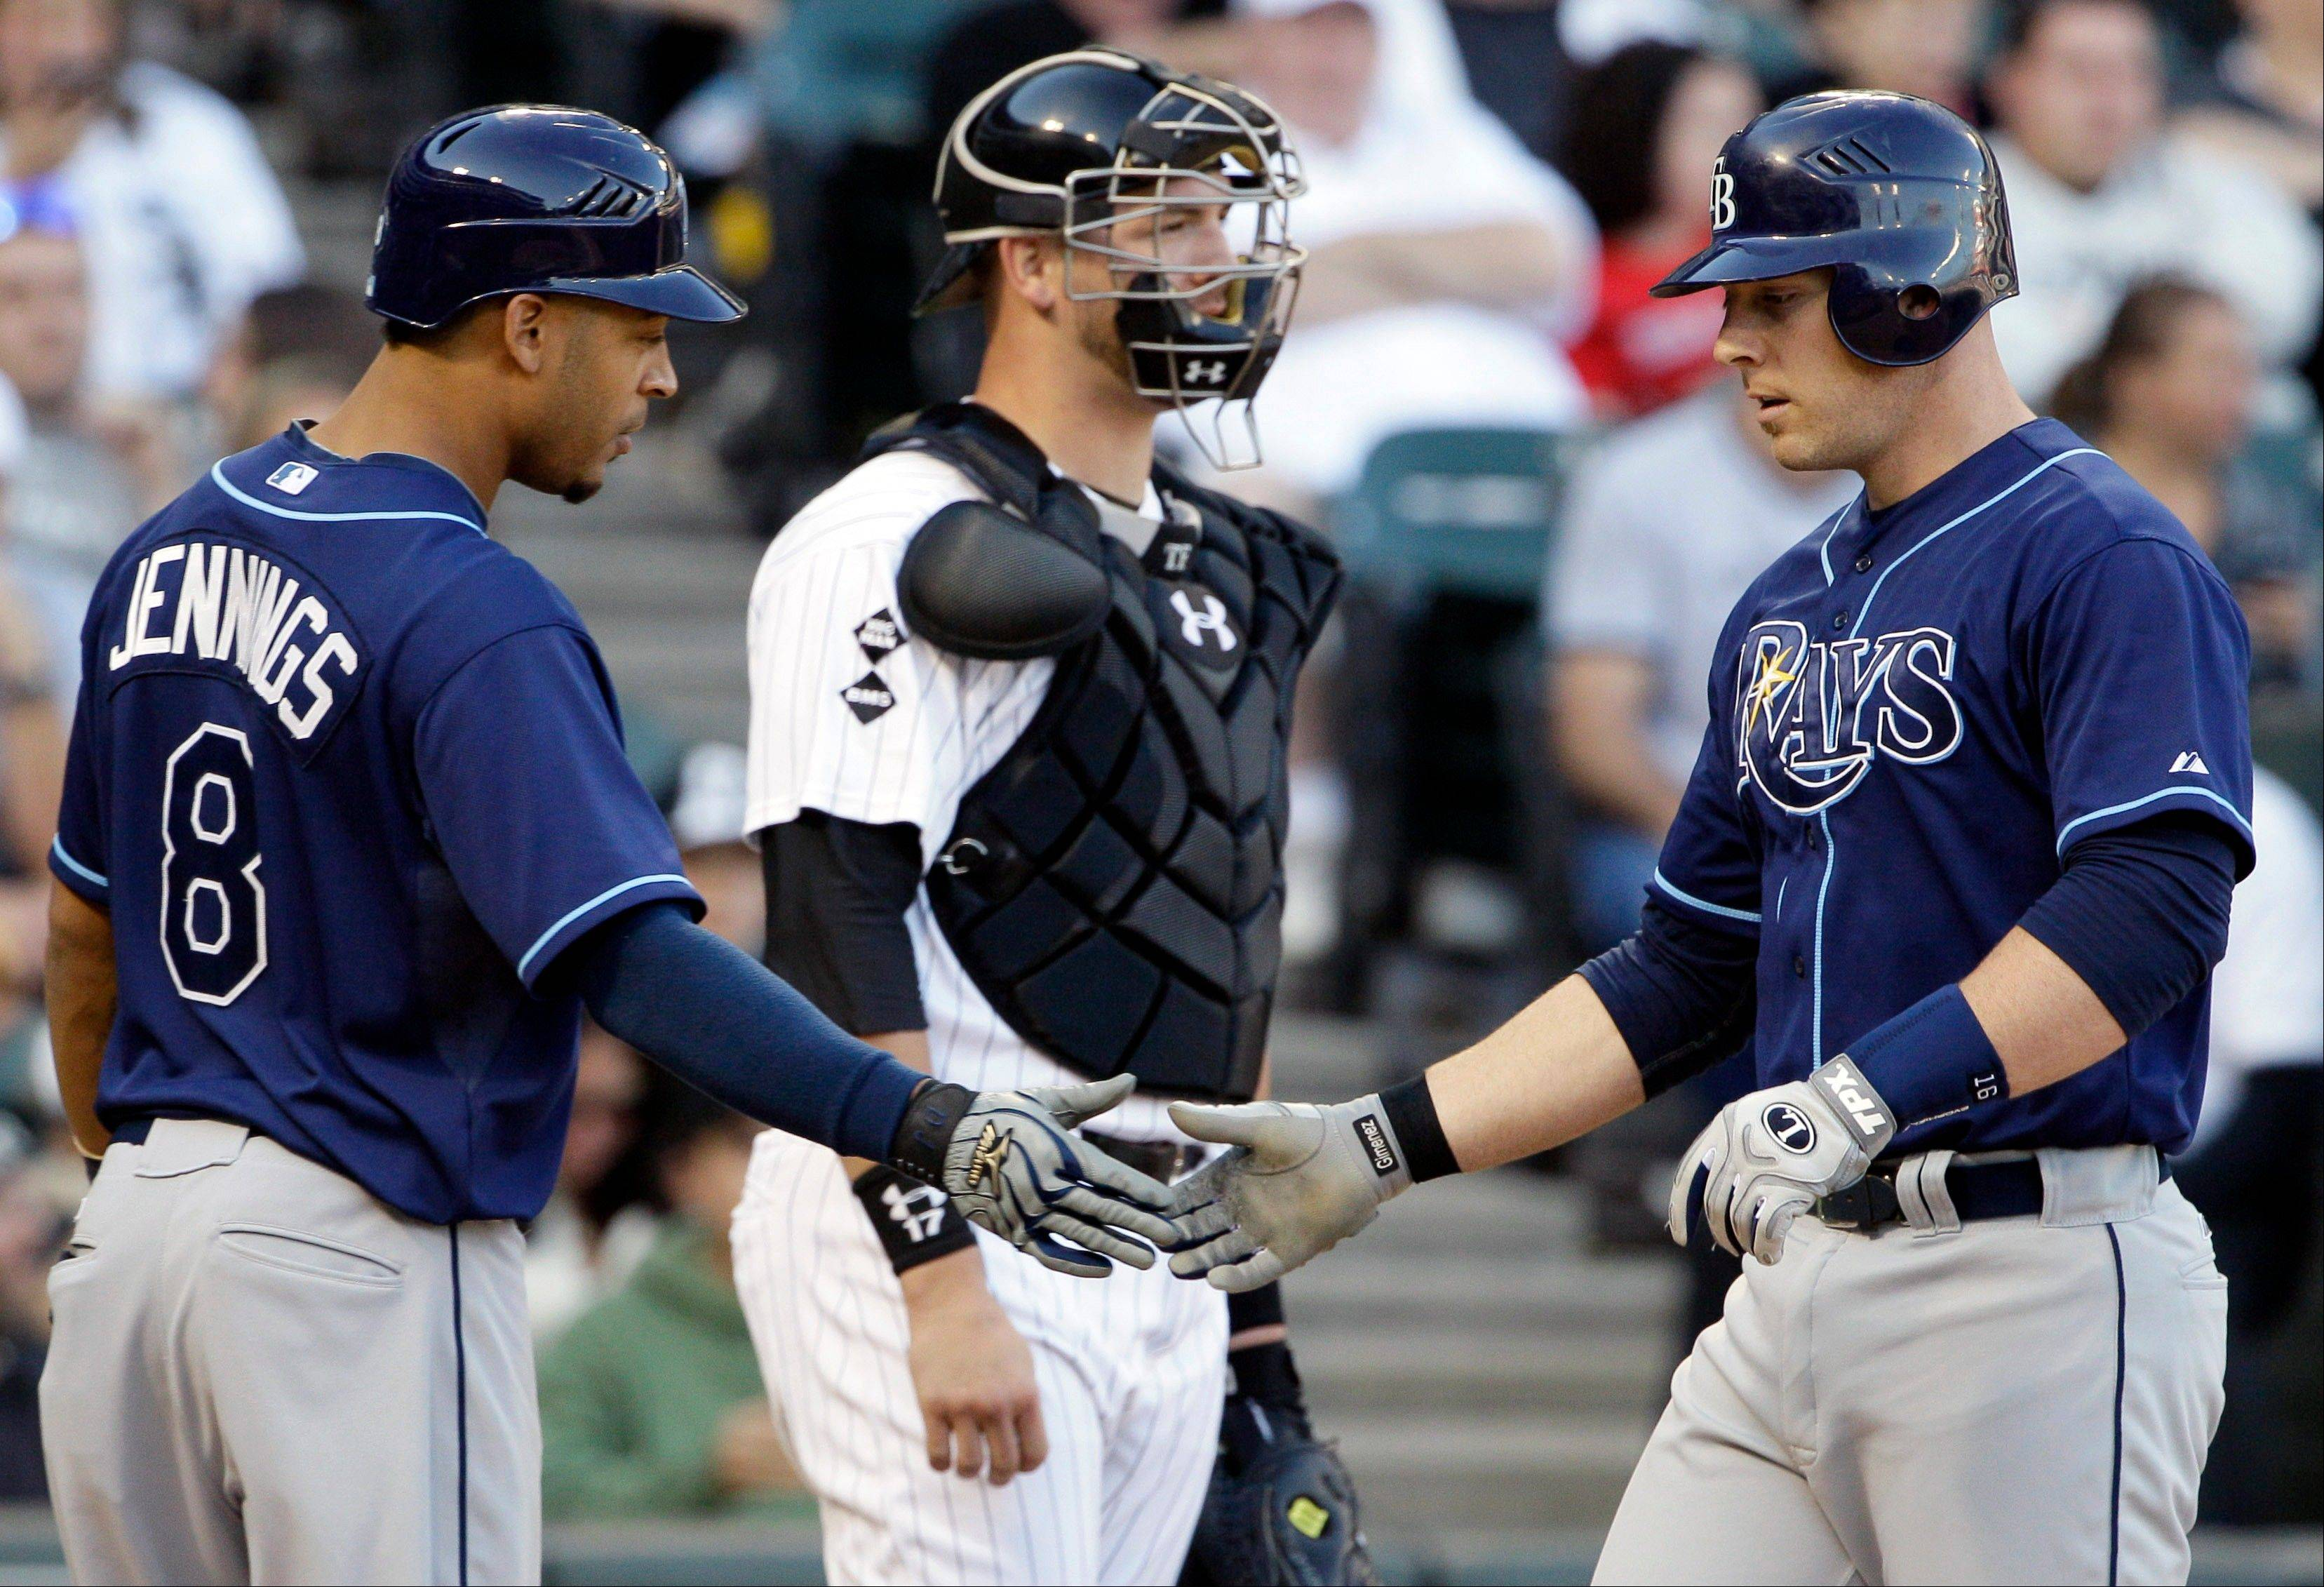 Slumping Sox fall to Rays, two games out of first